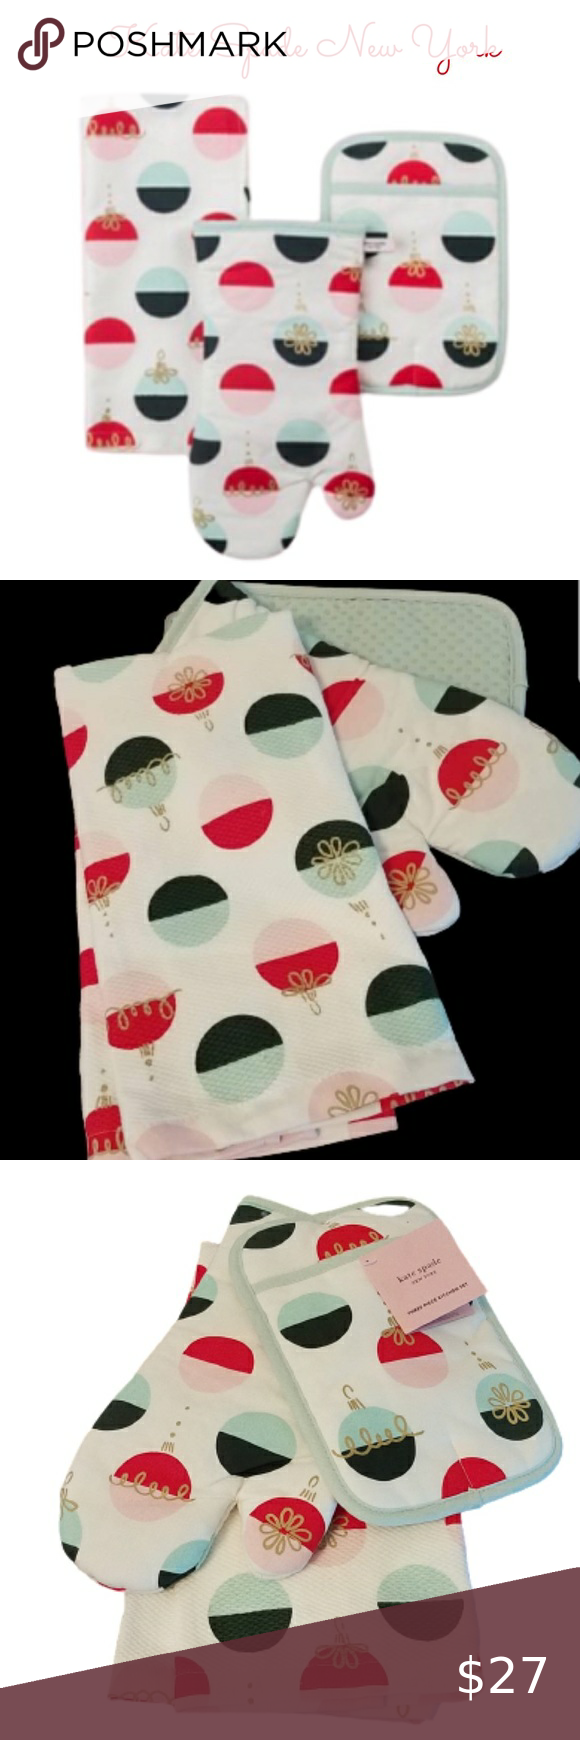 Kate Spade New York Kitchen Towels